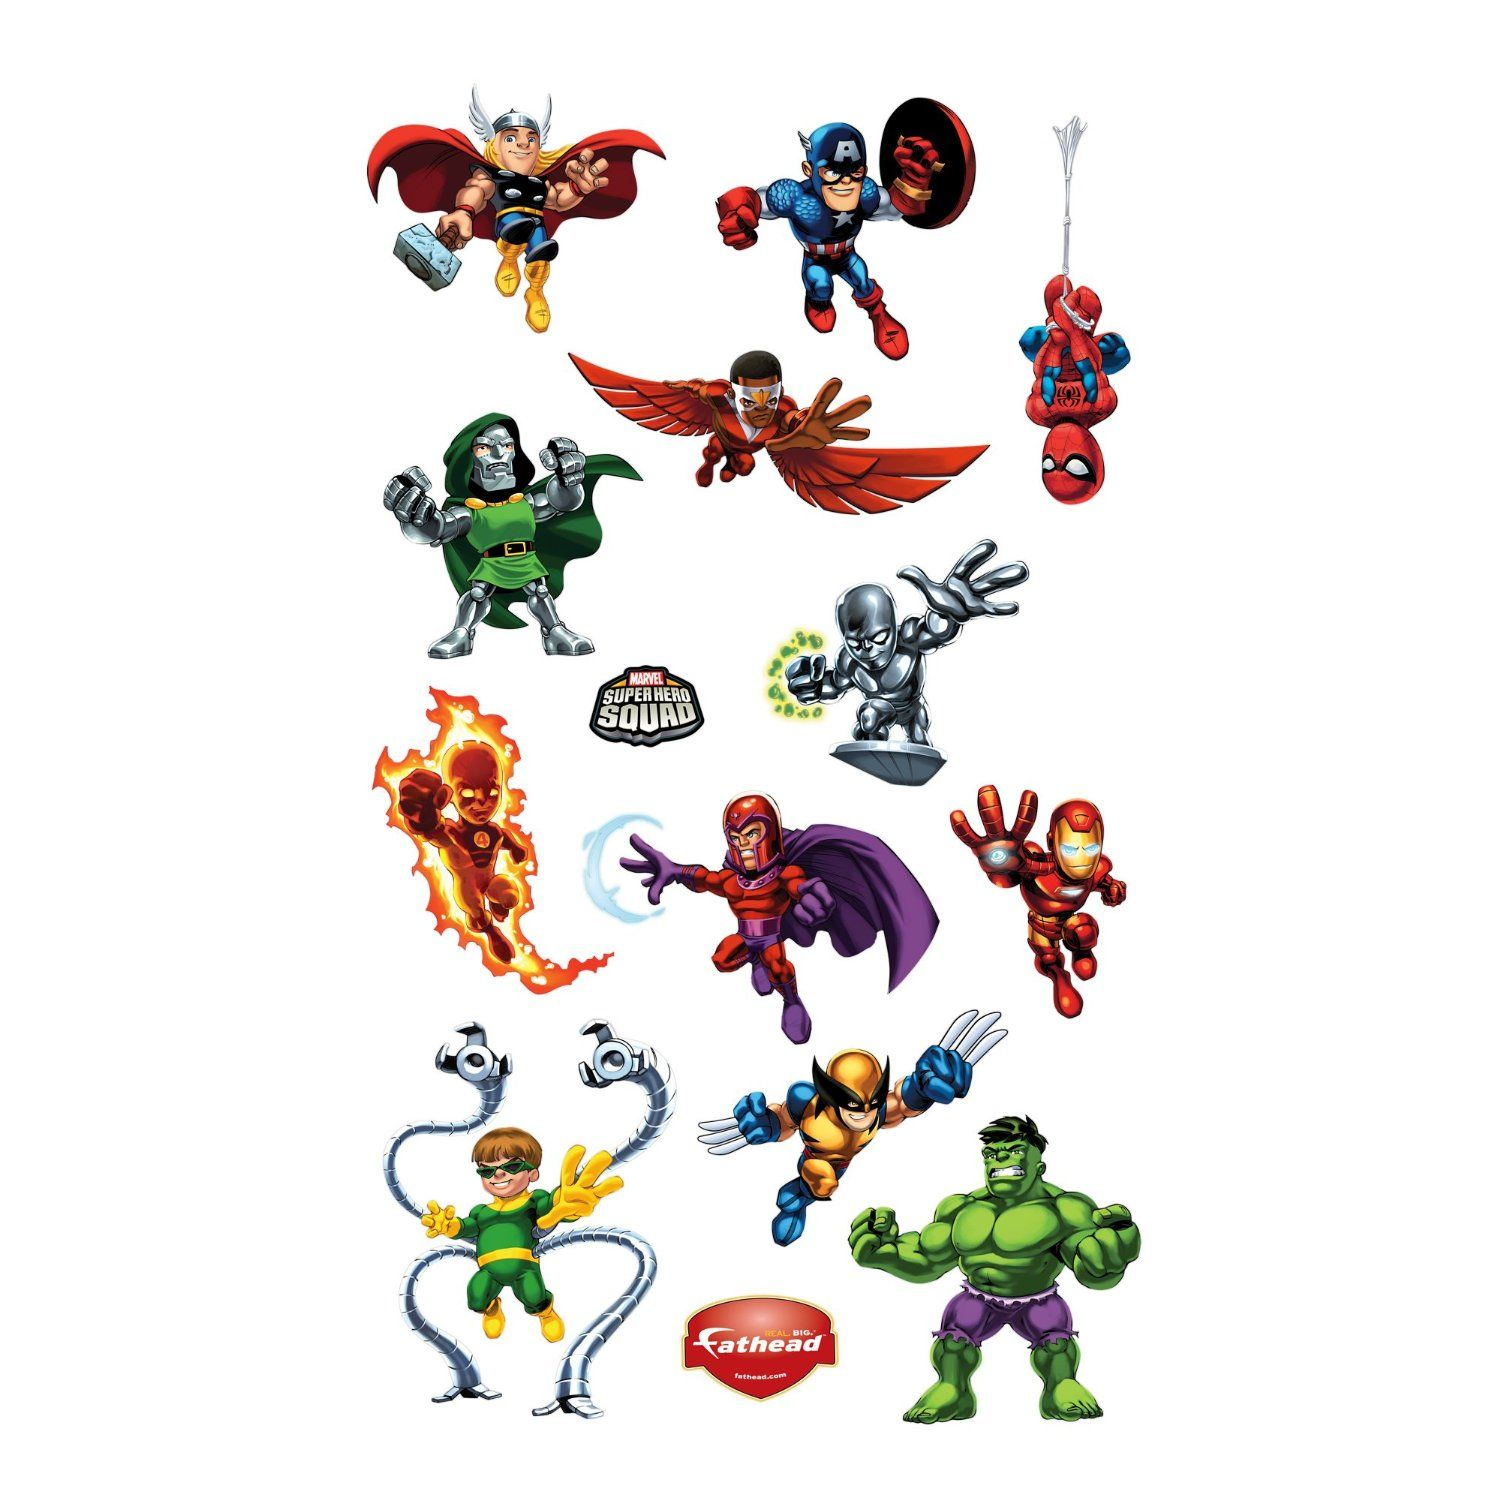 Superhero symbols images of category super hero squad tags wall superhero symbols images of category super hero squad tags wall decal wallpaper amipublicfo Gallery